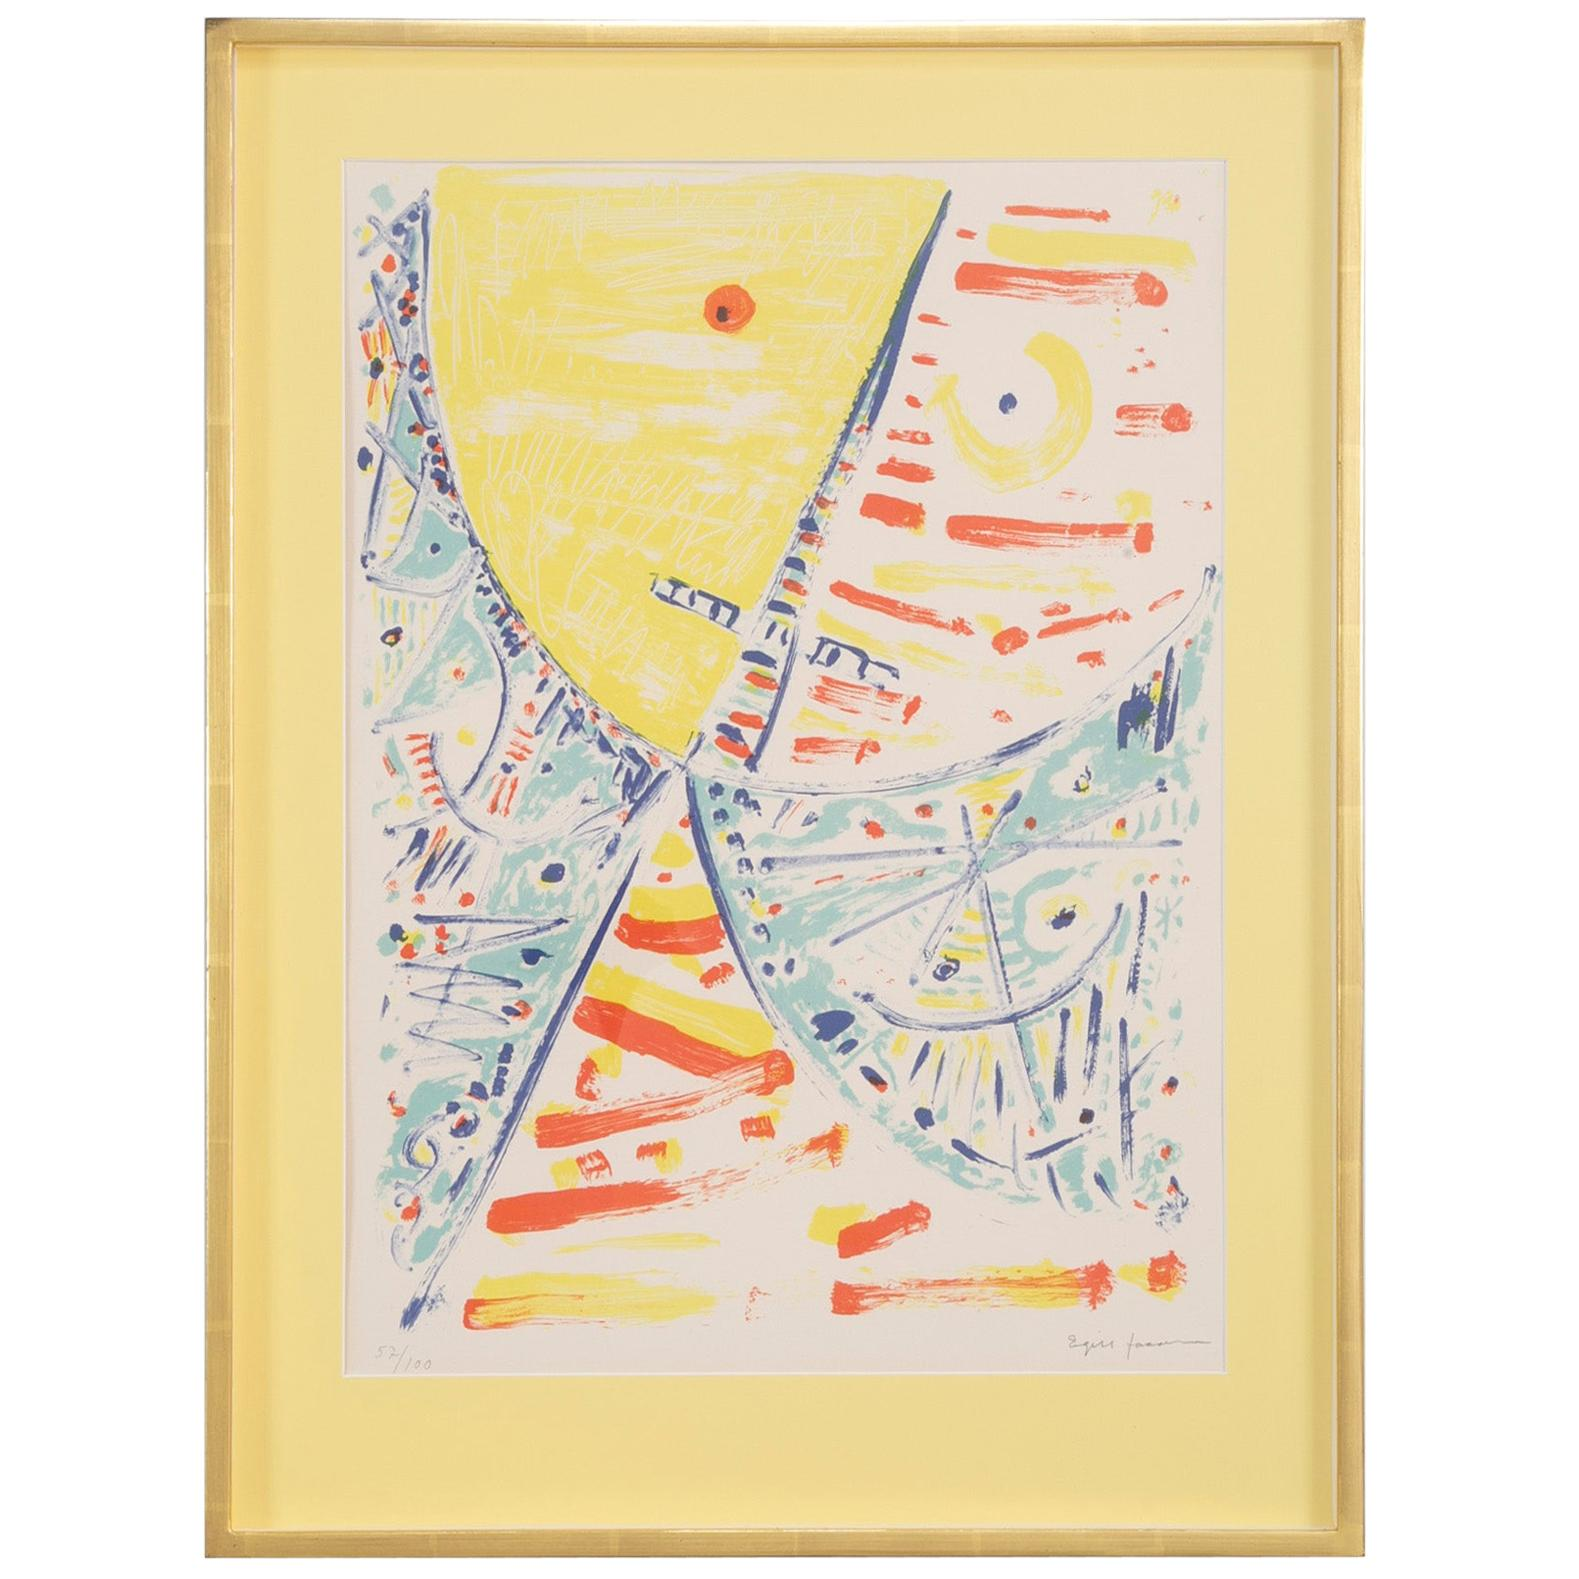 Lithograph in Colors Composition 57/100 by Egill Jacobsen